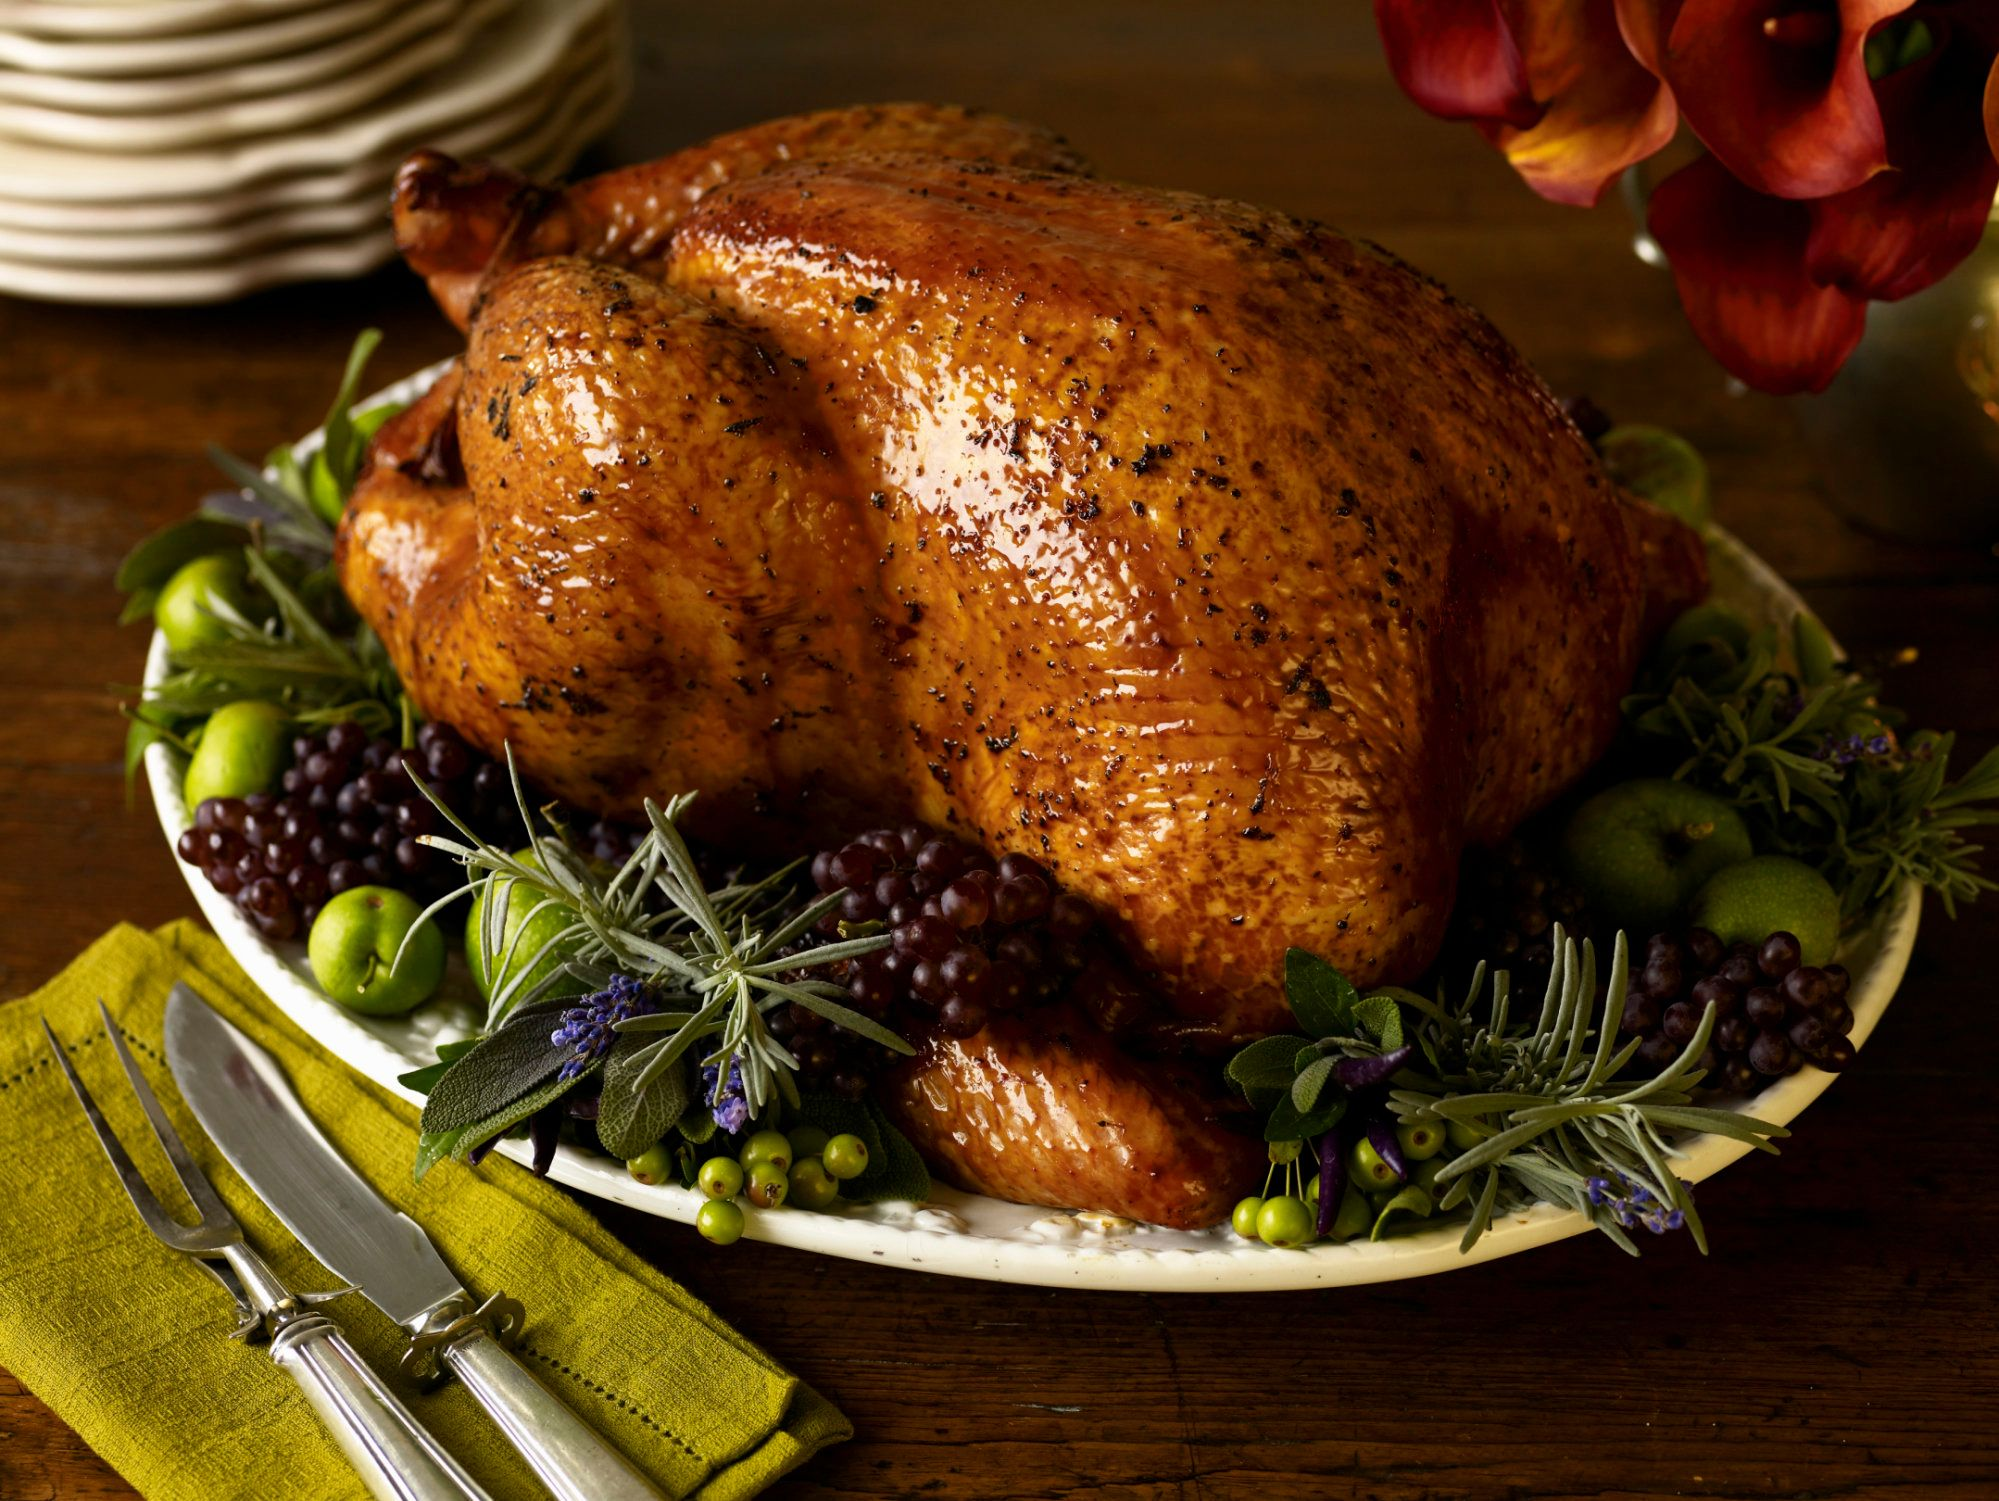 Roast turkey with garnish and platter on rustic wooden table